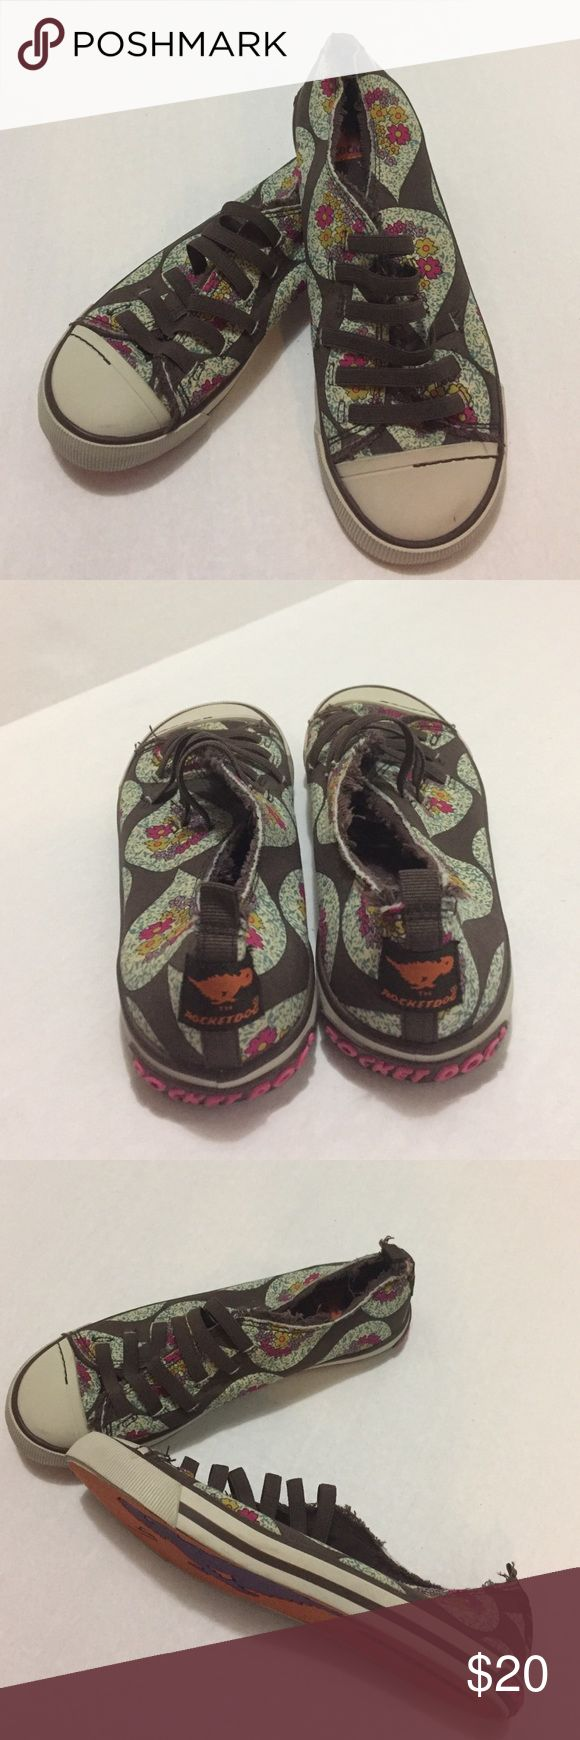 Rocket Dog Floral Sneaker Rocket Dog Floral Sneaker - elastic lace - never worn like new Rocket Dog Shoes Sneakers